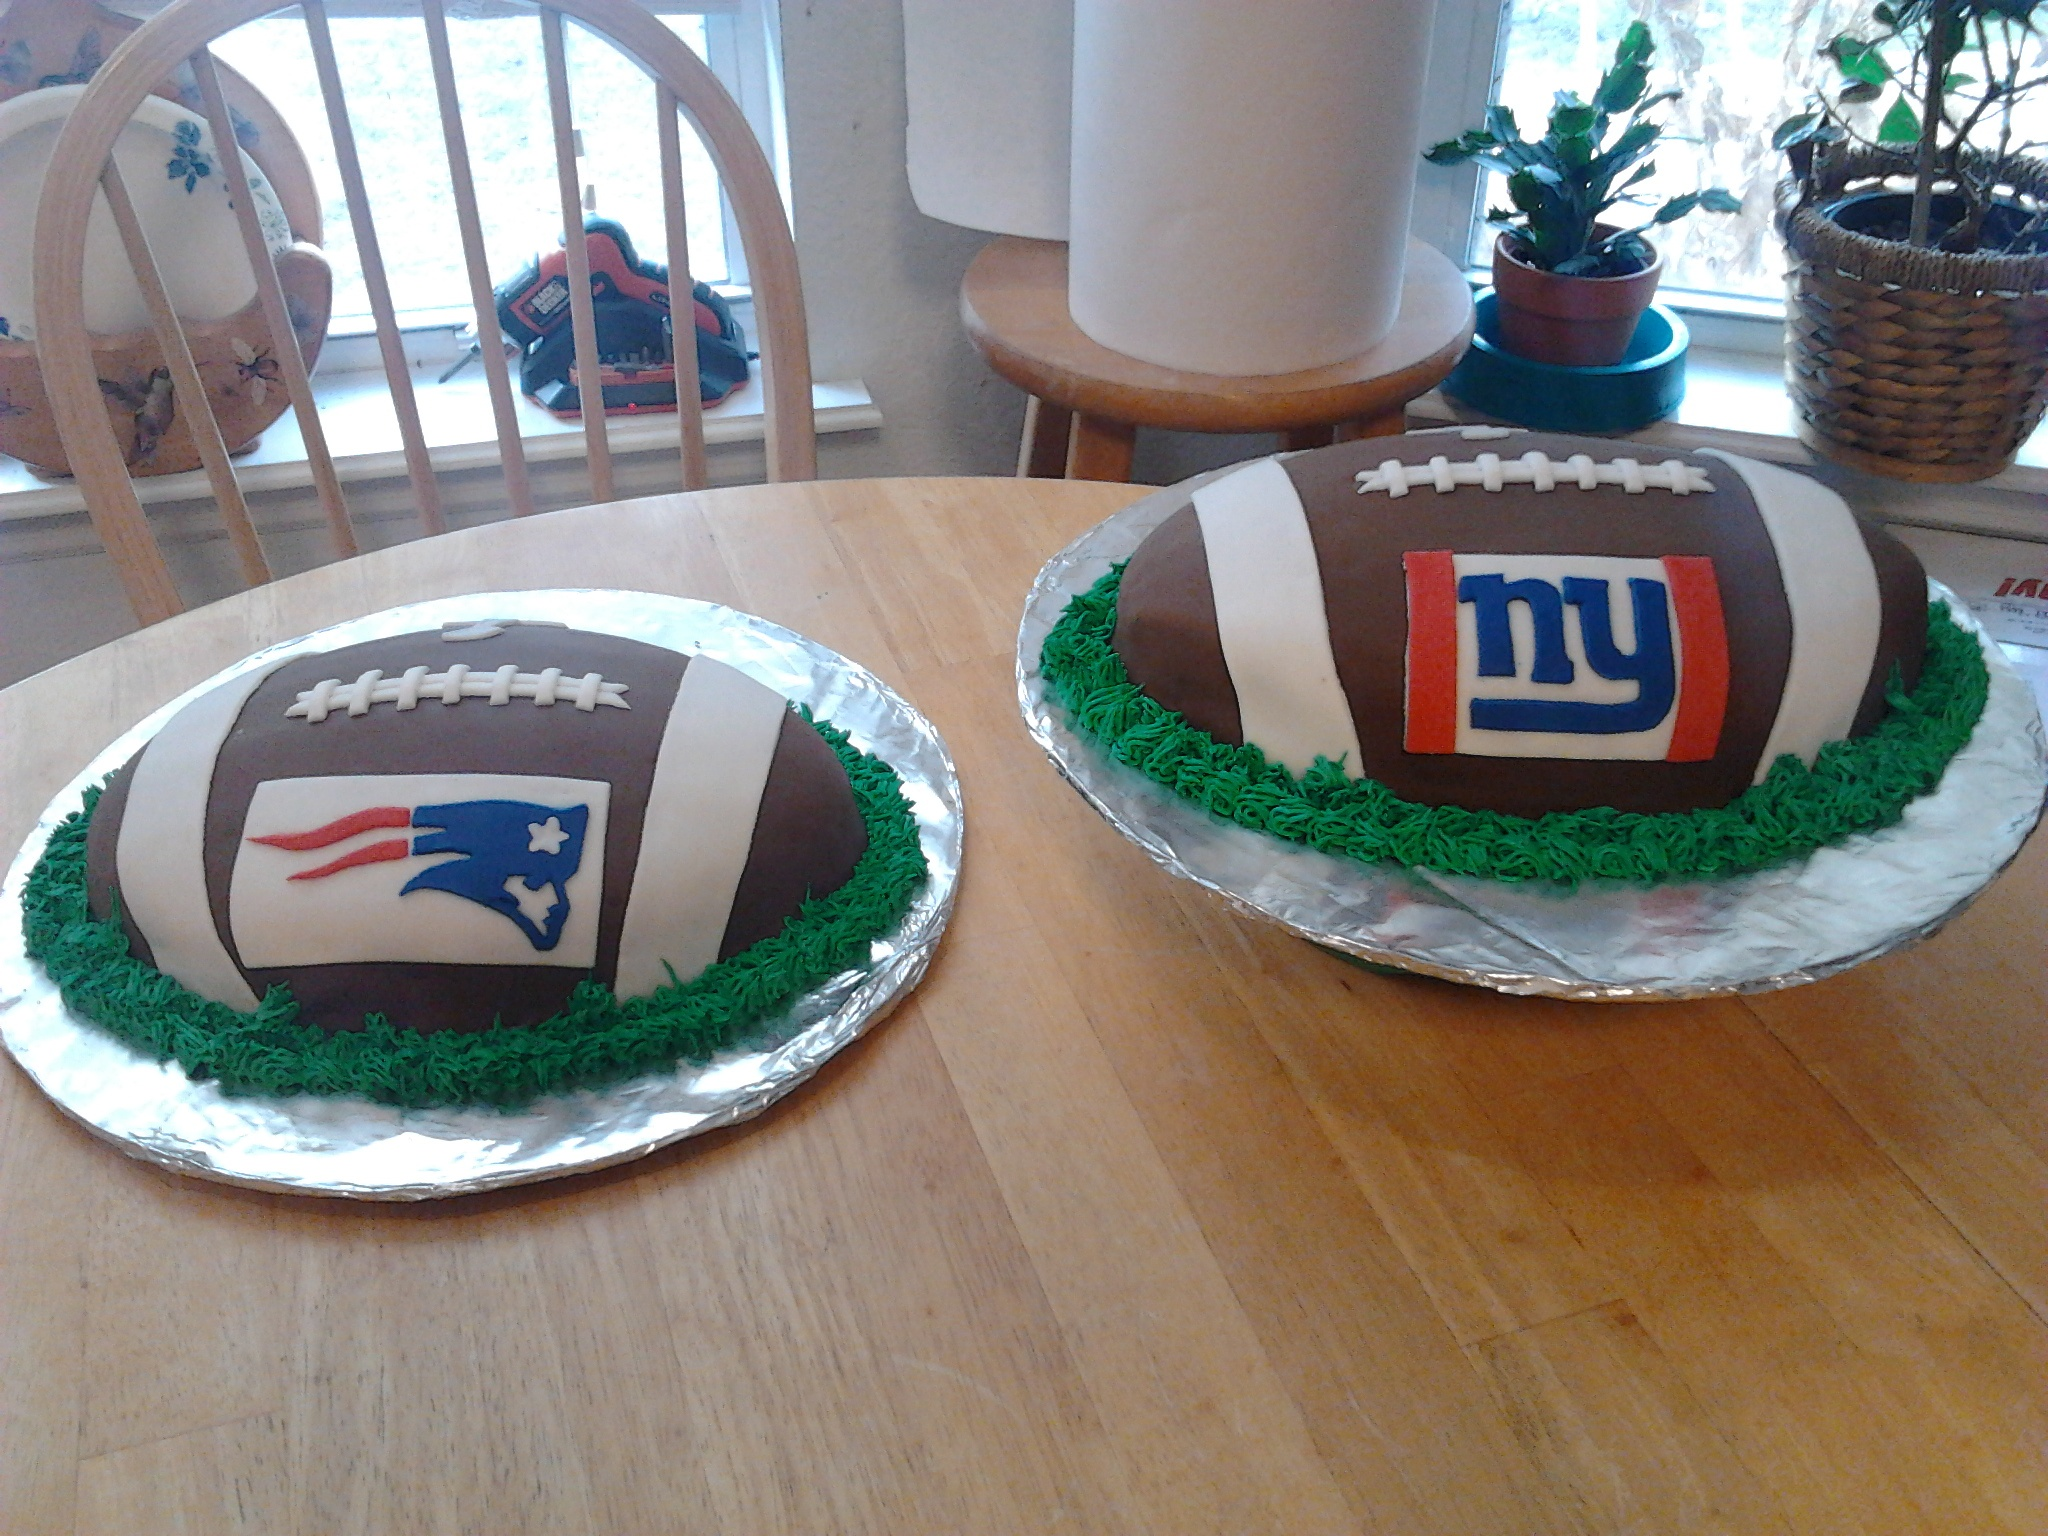 Supper Bowl cakes by Susie Price Williams